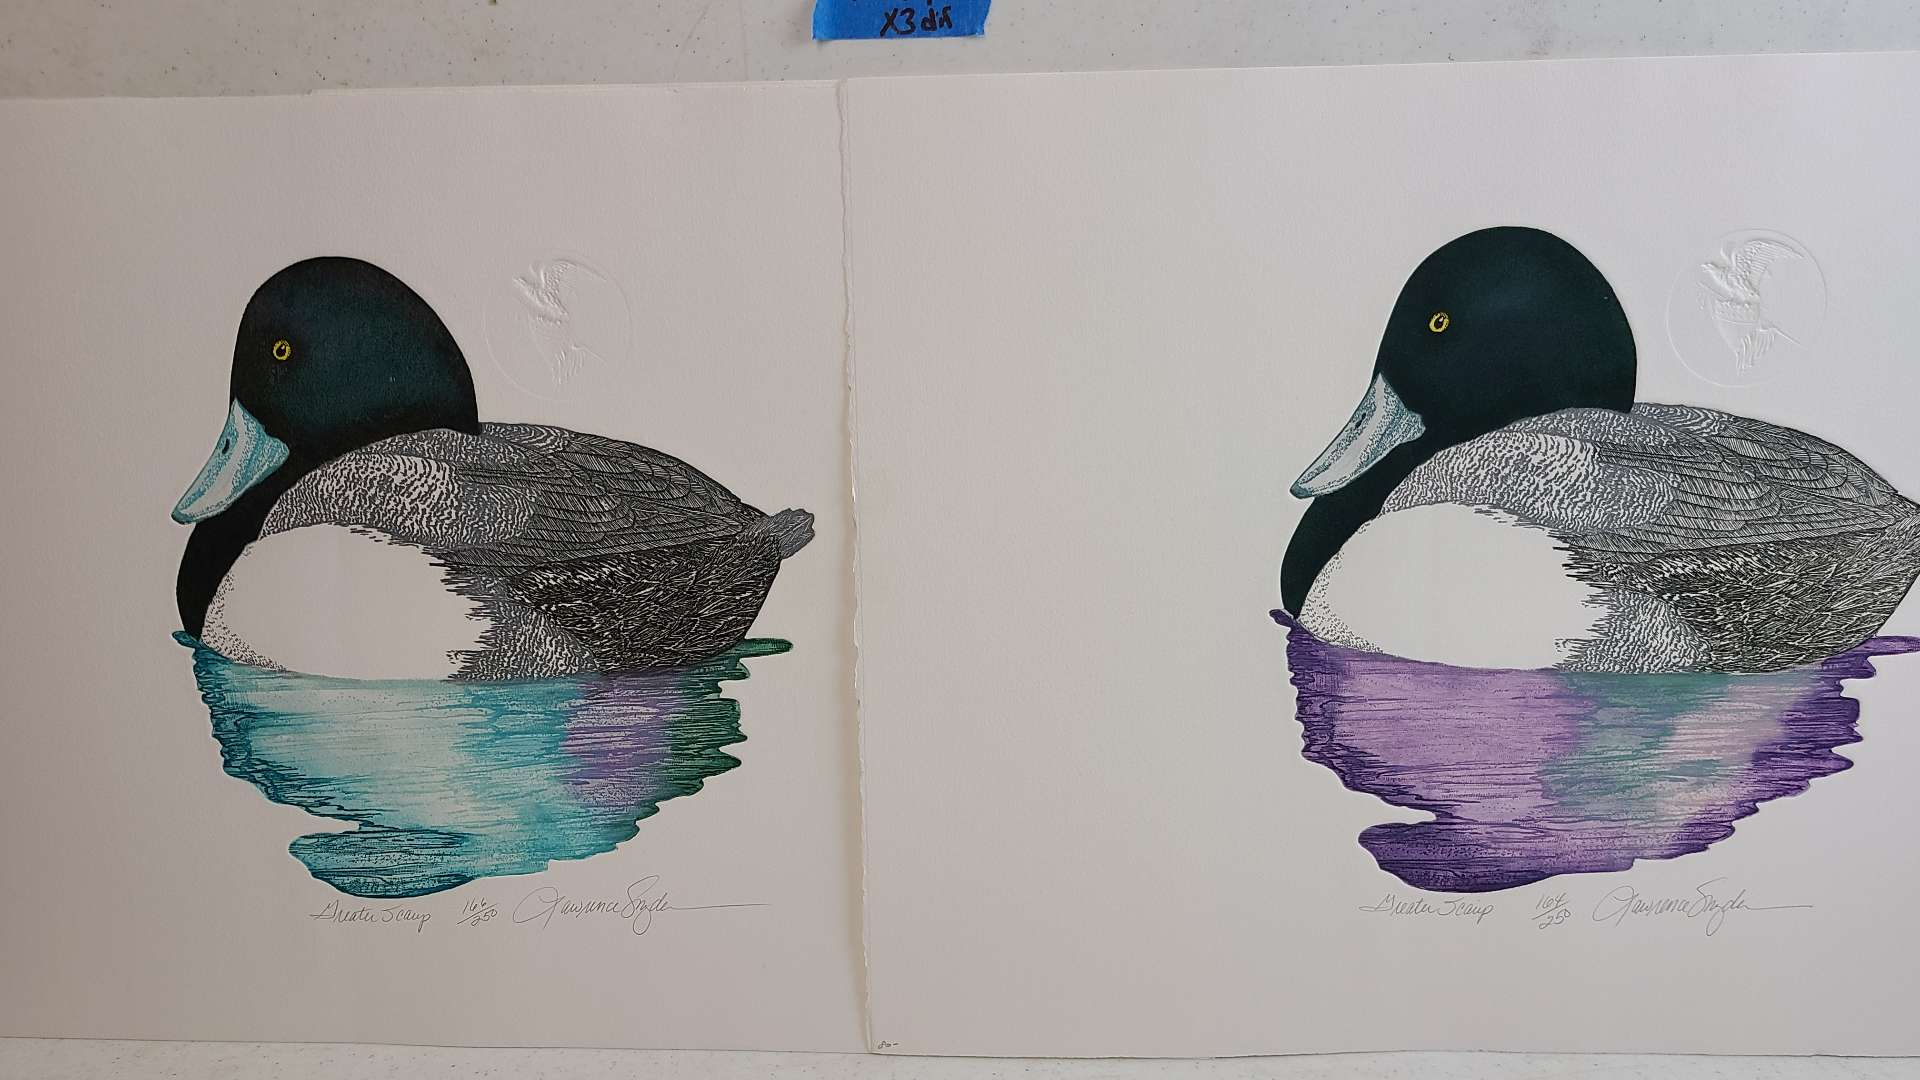 Lot # 290 Lot of 2 Duck Inspired Signed & Numbered Lithographs